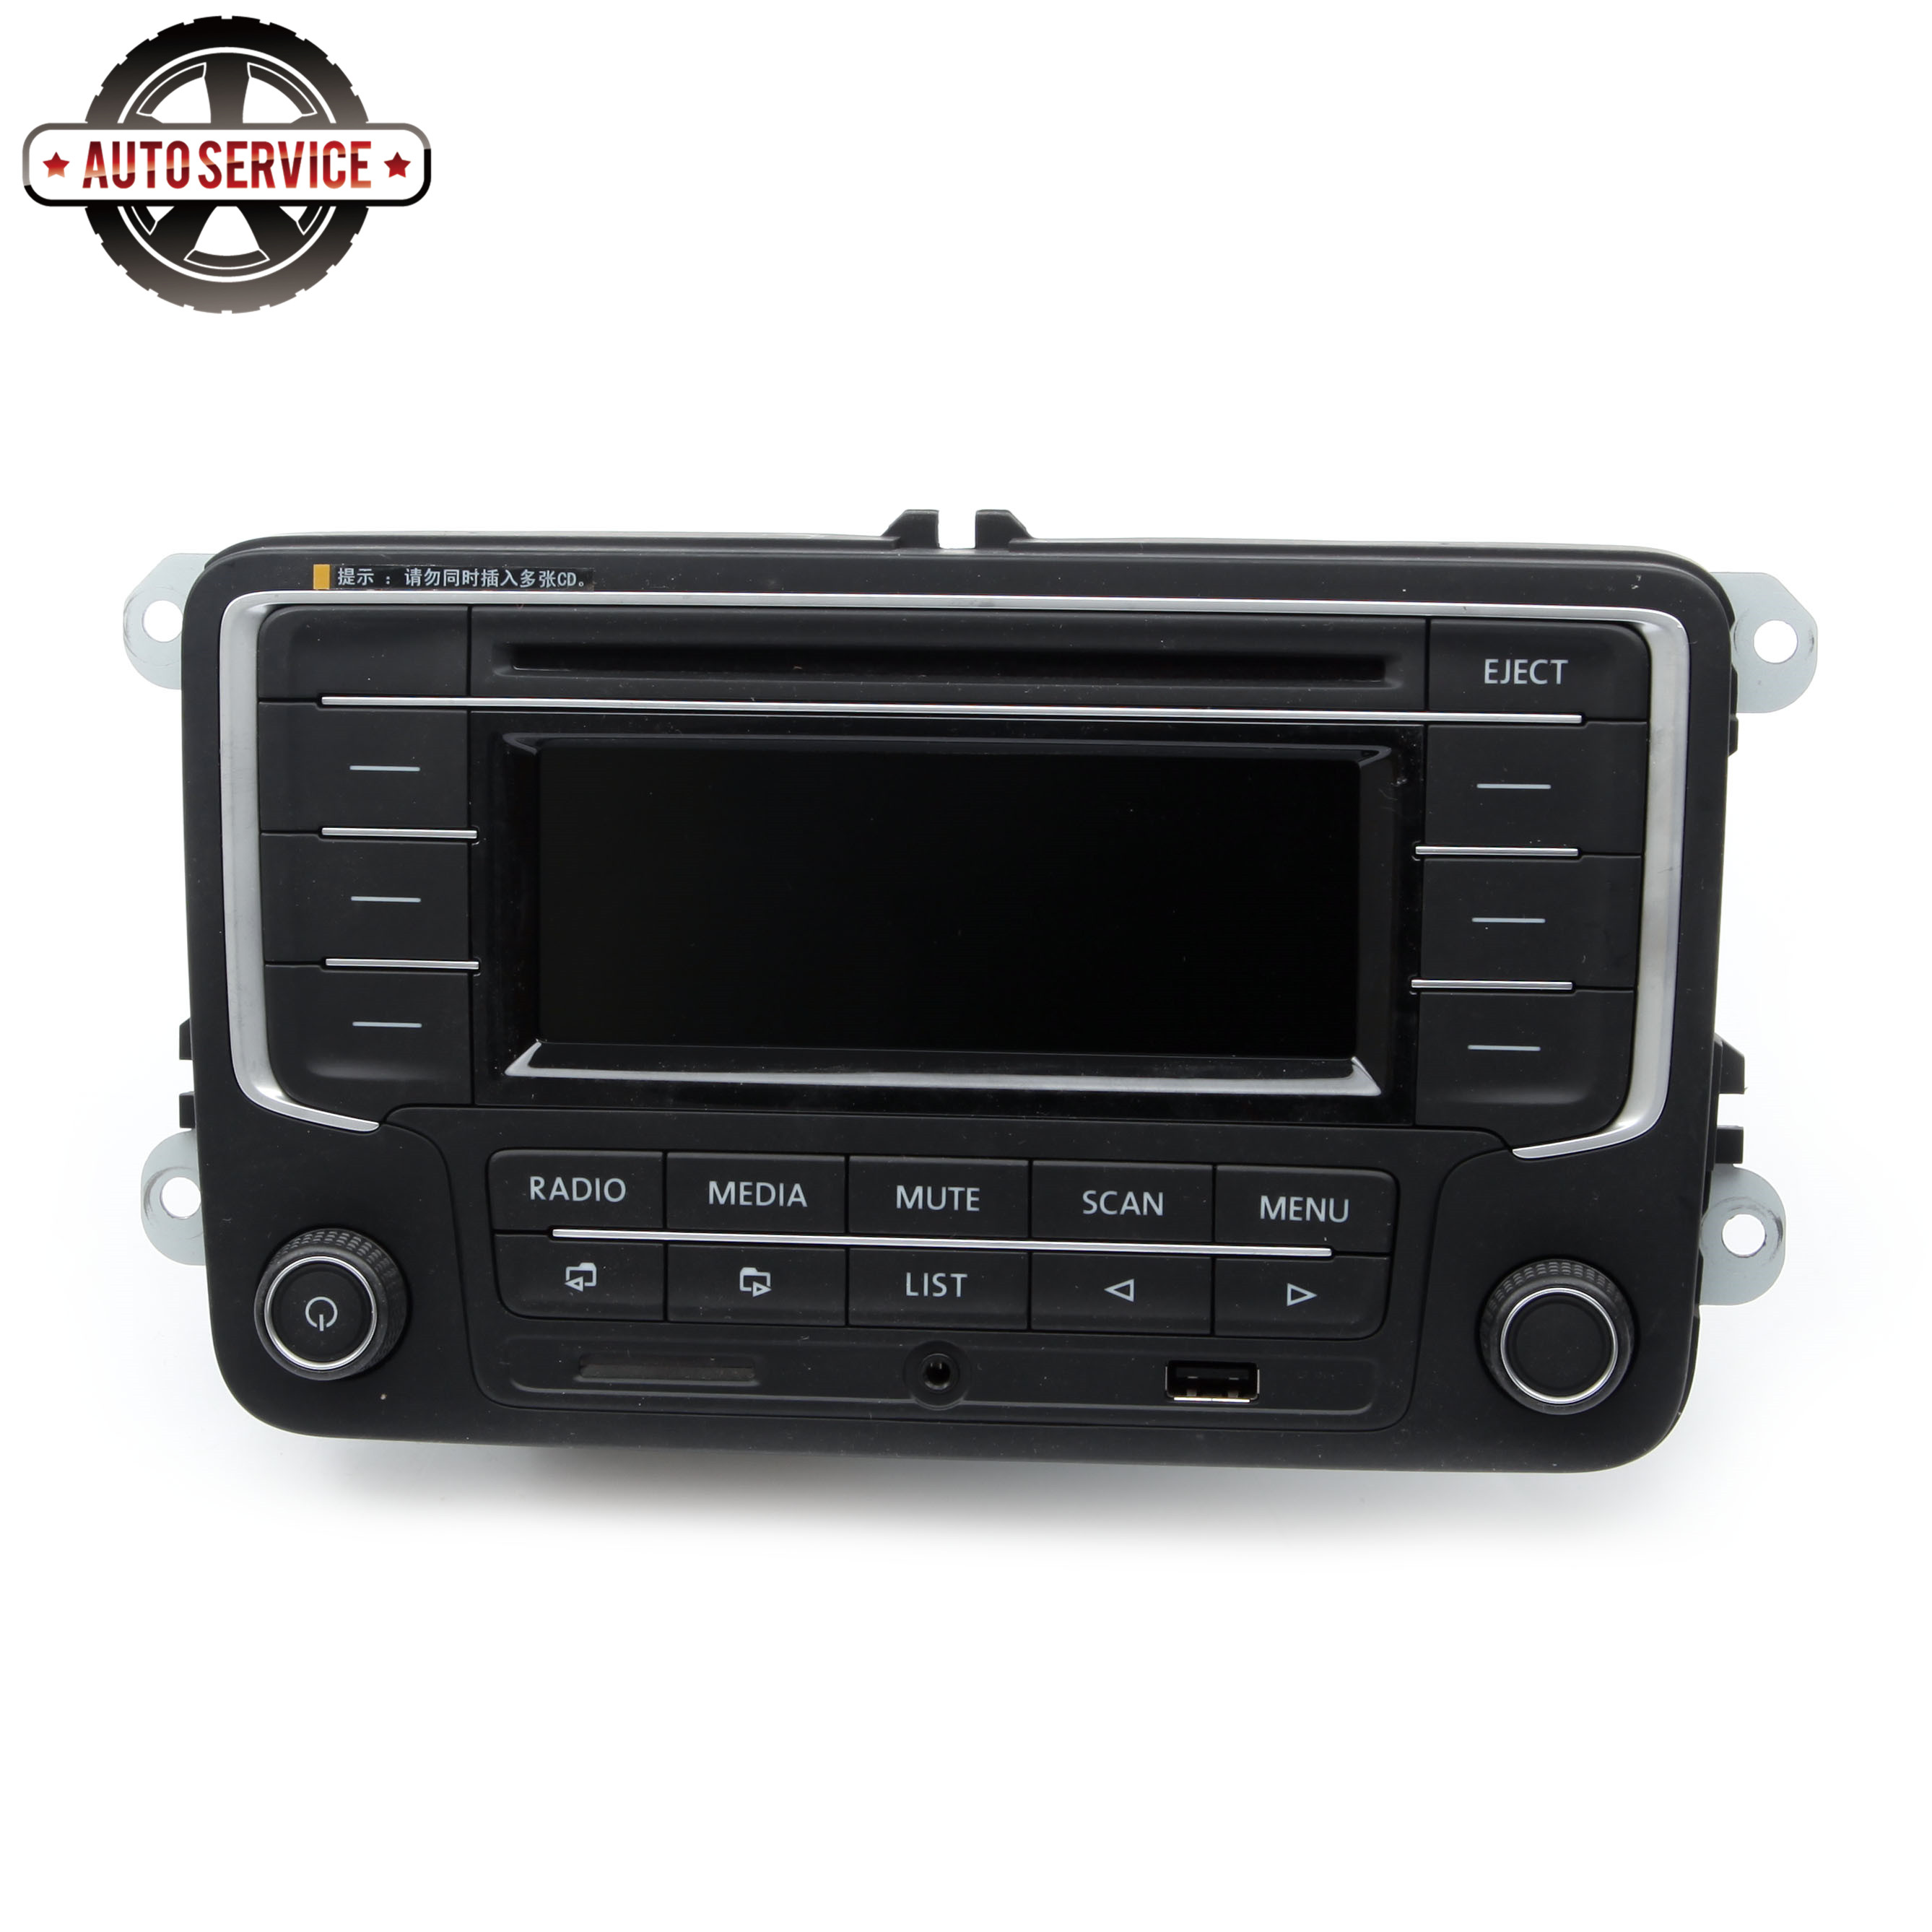 NEW 3AD 035 185 Car Radio MP3 Player With <font><b>USB</b></font> AUX CD SD Input <font><b>RCD</b></font> <font><b>510</b></font> For VW New Polo EOS CC Golf Jetta Passat MK5 MK6 3AD035185 image